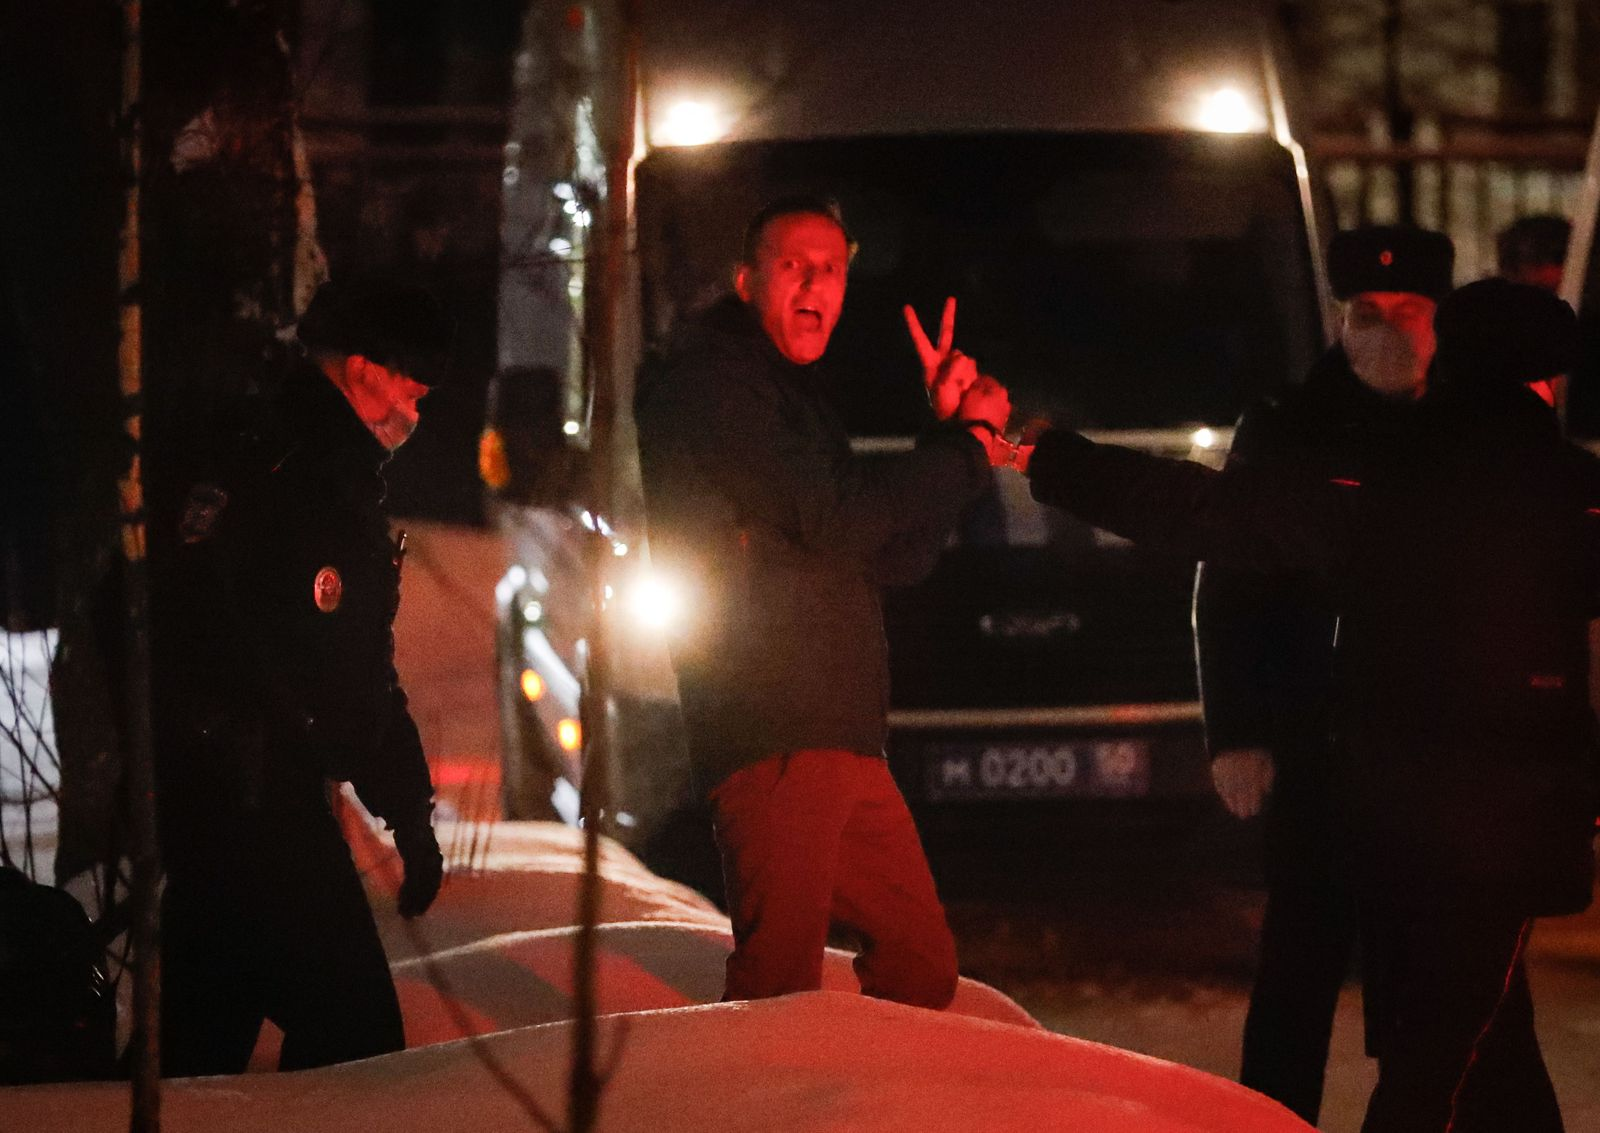 Russian opposition leader Alexei Navalny arrest, Moscow, Russian Federation - 18 Jan 2021